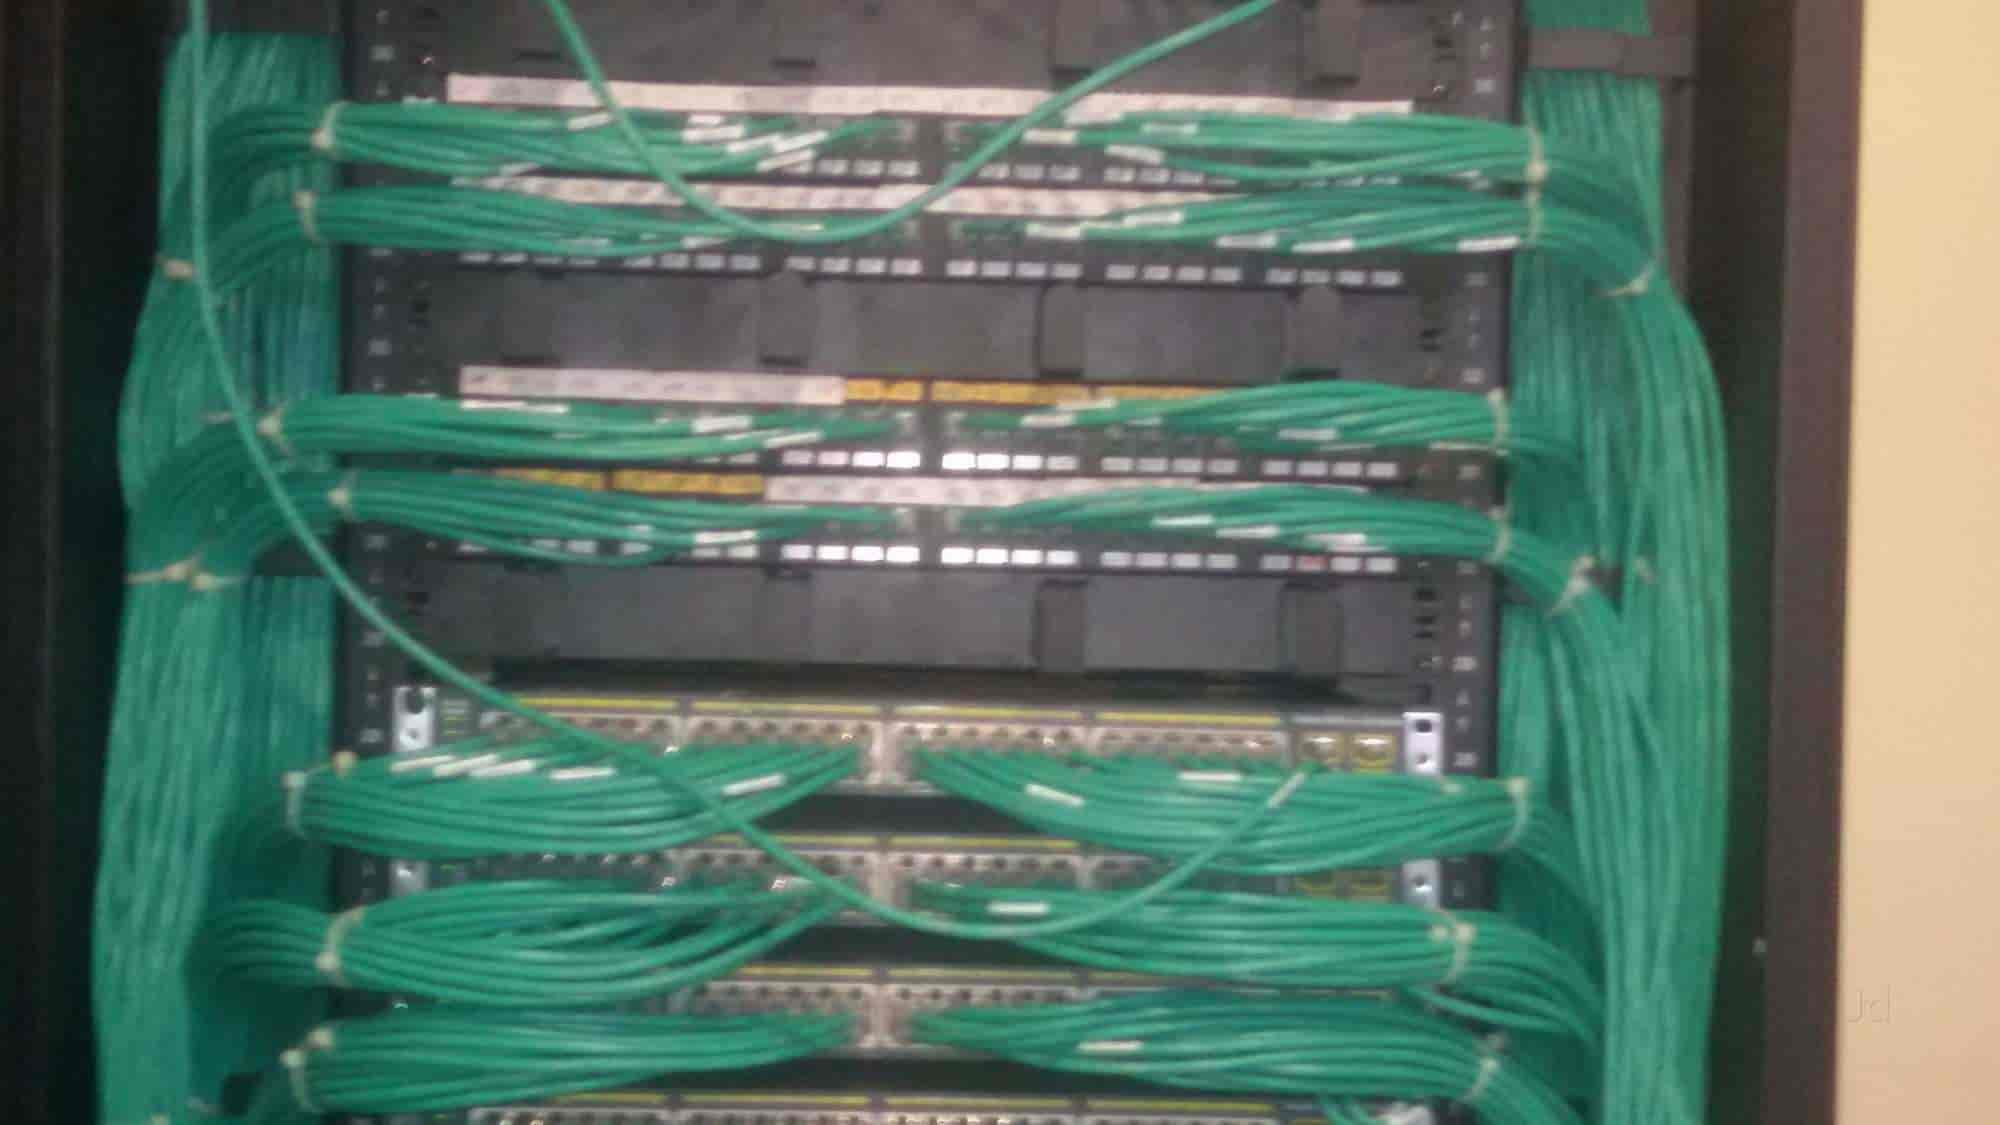 Patch Panel Cable Also Lifesize Team 220 On Wiring Closet Networks